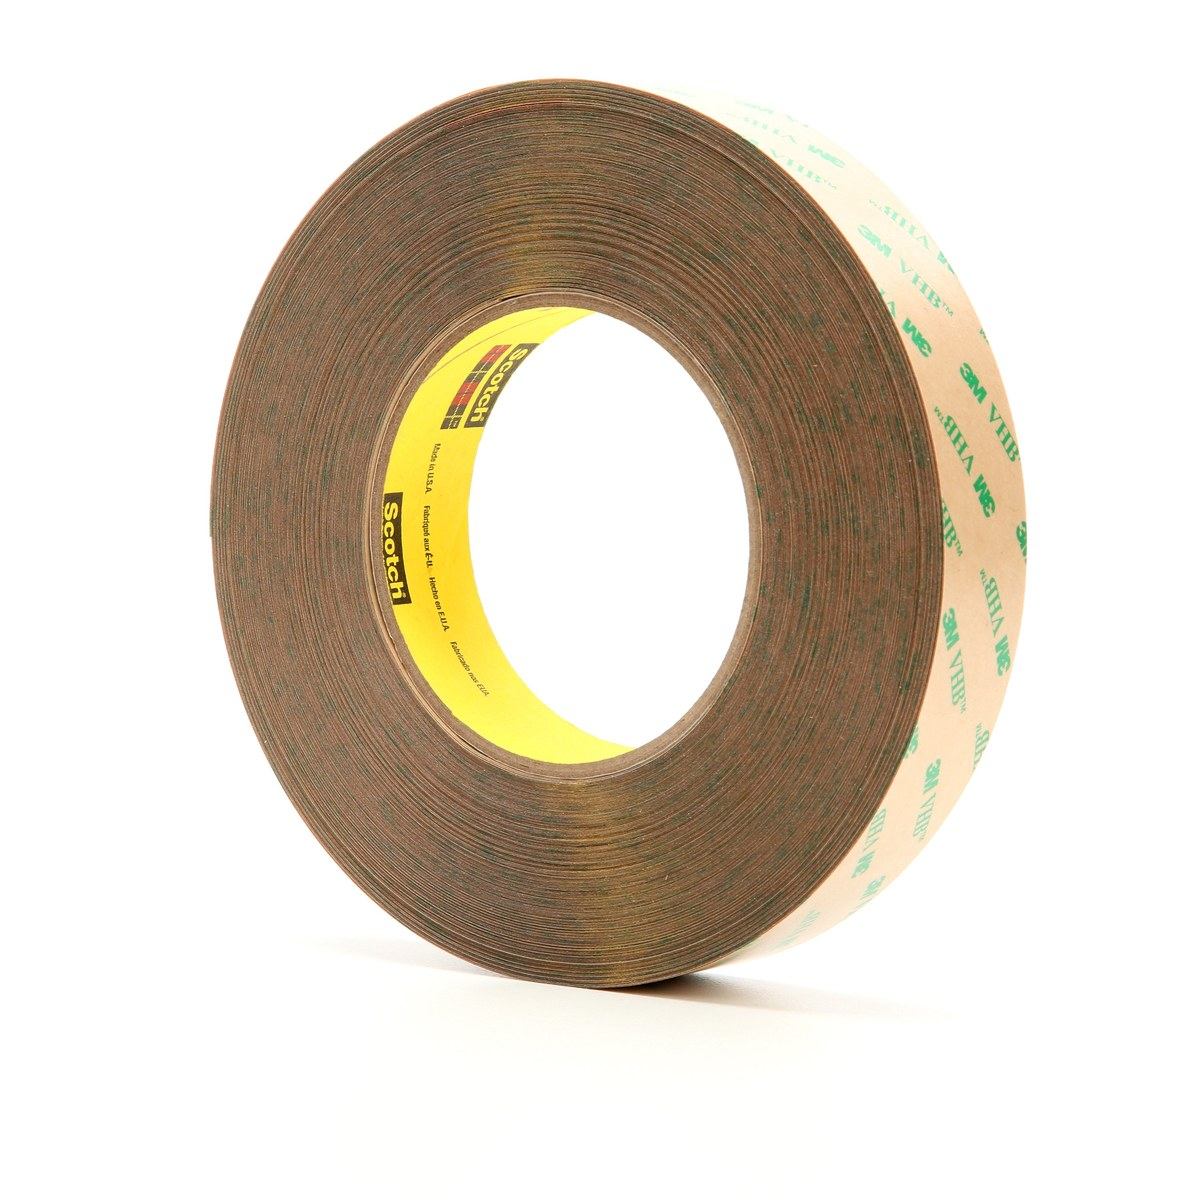 3m Vhb Tape Canada 3m F9469pc Vhb Tape 13971 1 In X 60 Yd Clear Rshughes